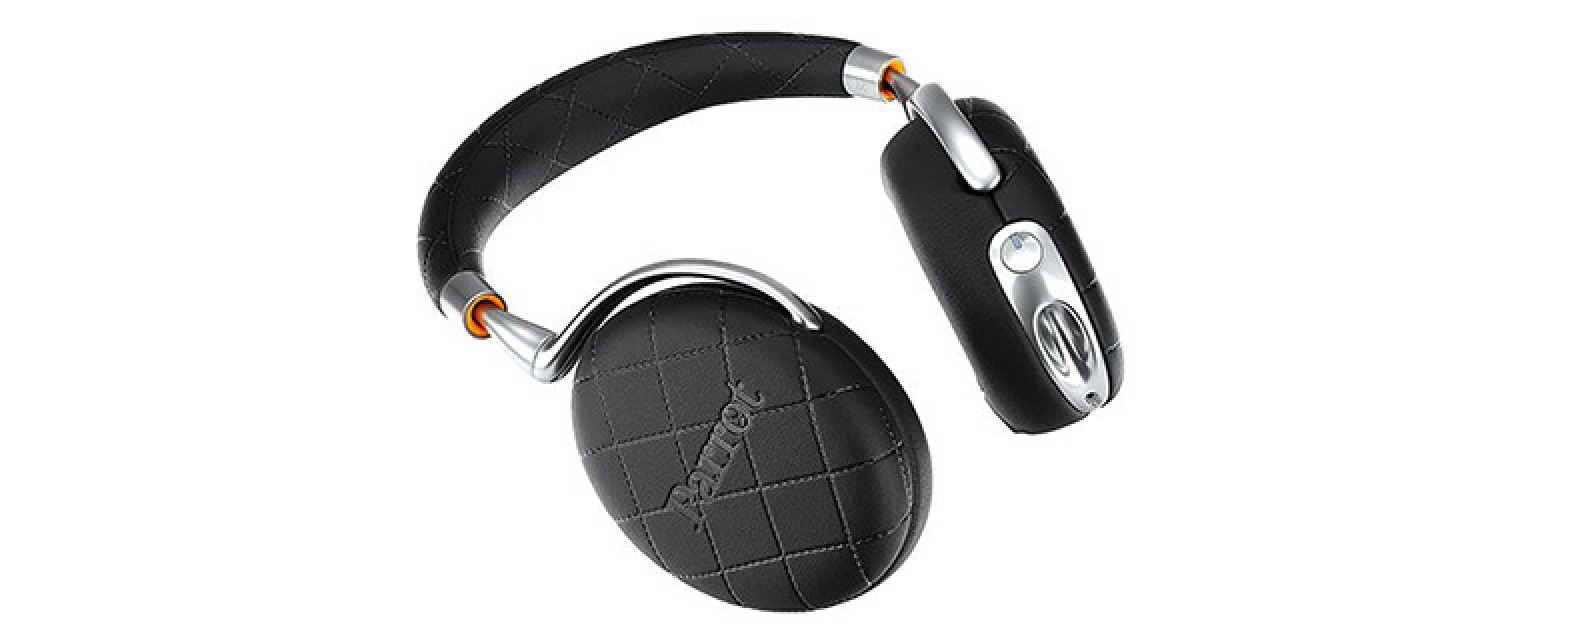 Review: Add the Parrot Zik 3.0 to the List of Best Bluetooth Headphones